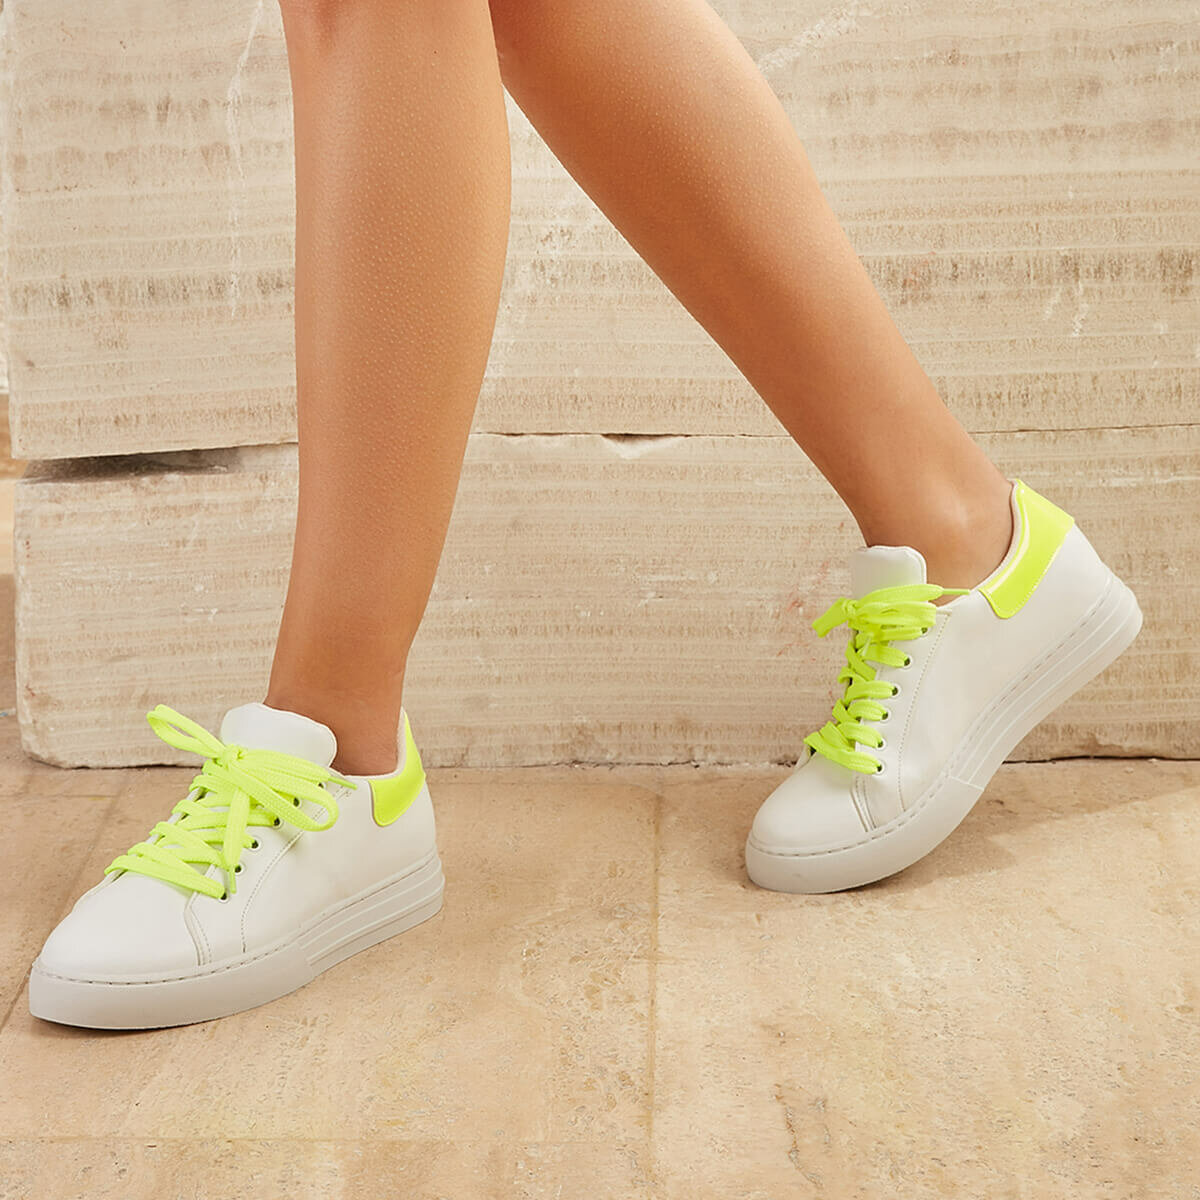 FLO Women Sneaker Shoes HOT Sneakers 2020 Fashion Breathble Vulcanized Shoes Women Platform Shoes Lace Up Casual Shoes Yellow White BUTIGO MILEN99Z SKIN